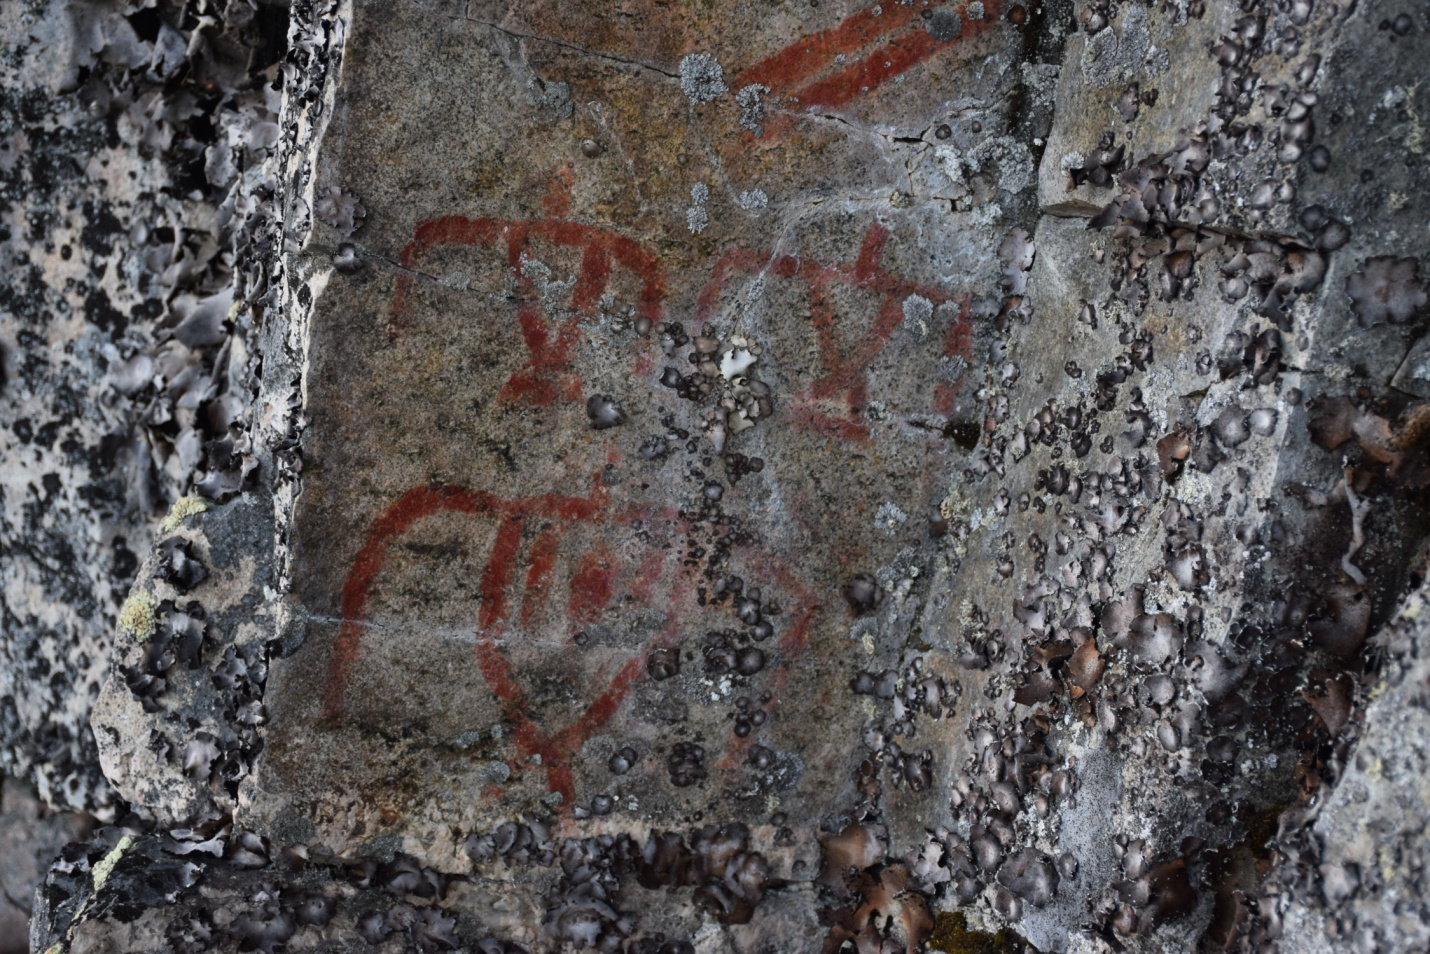 Picture of red ochre rock paintings representing three Thunderbirds at the Wizard Lake site, in Ontario, Canada